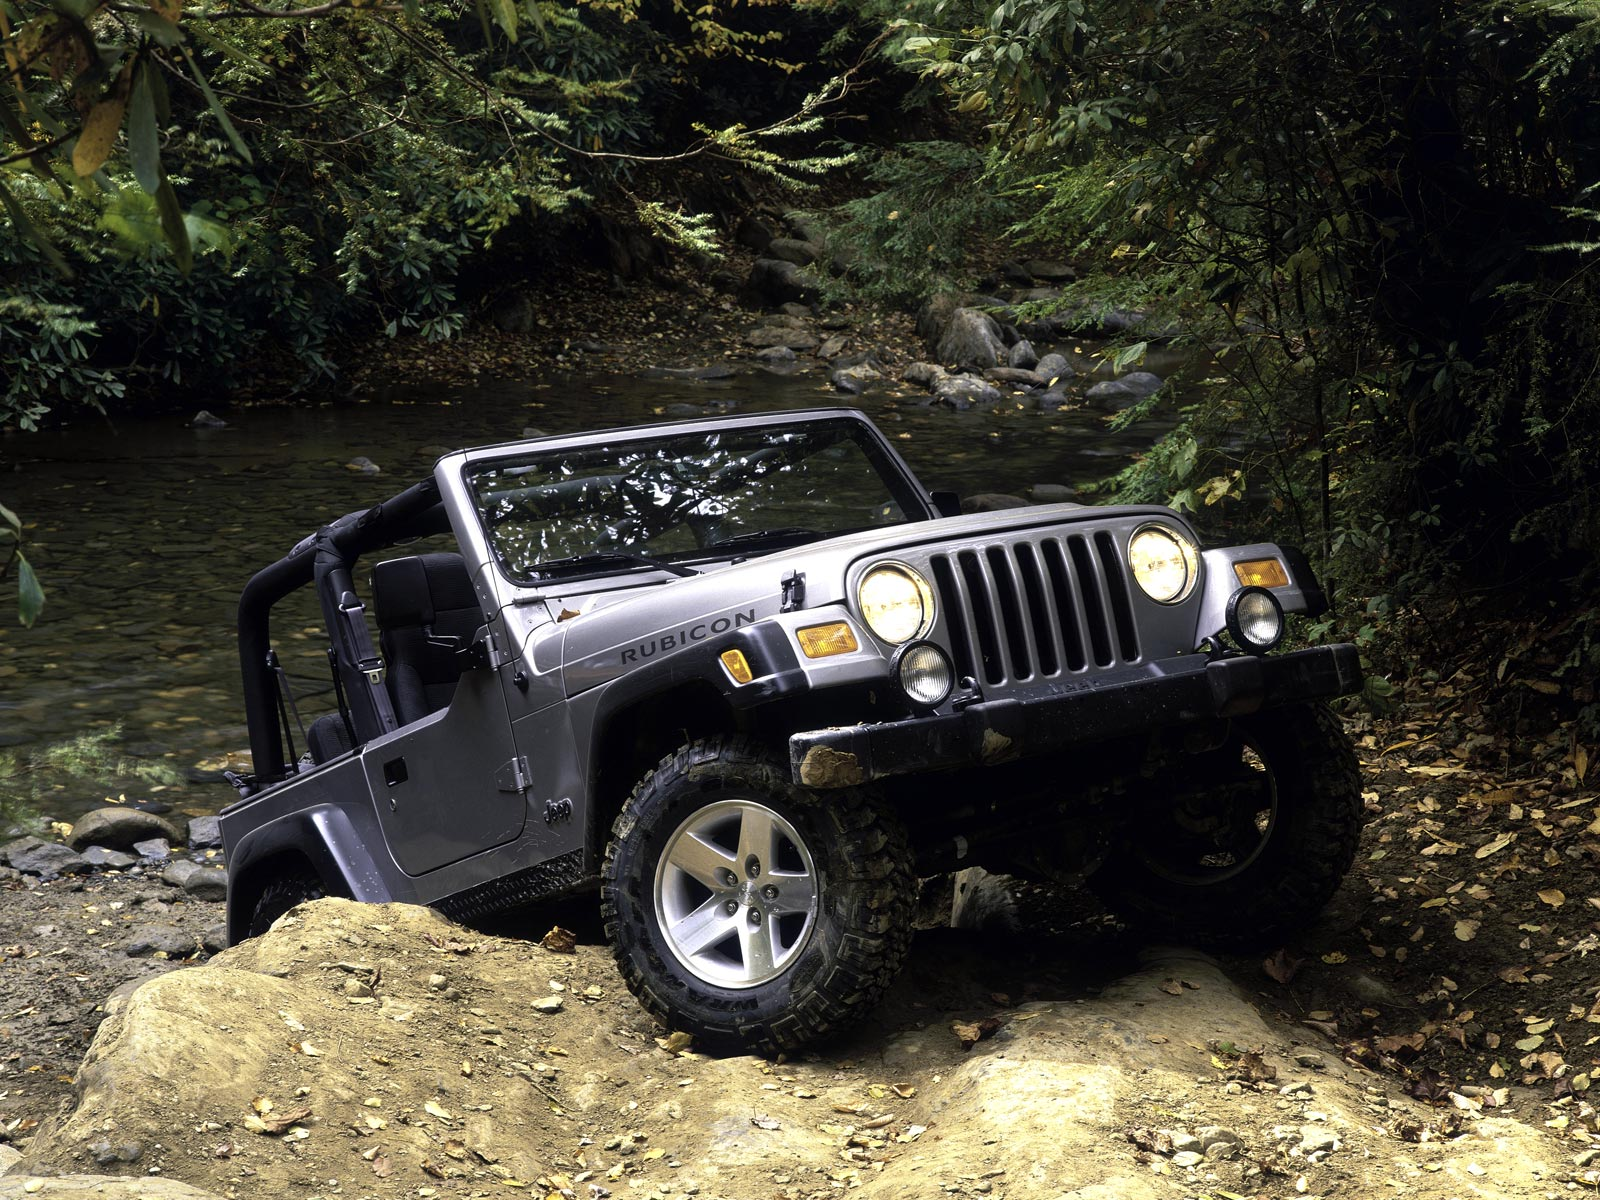 Jeep Wrangler Rubicon Wallpaper 3990 Wallpaper WallpaperLepi 1600x1200